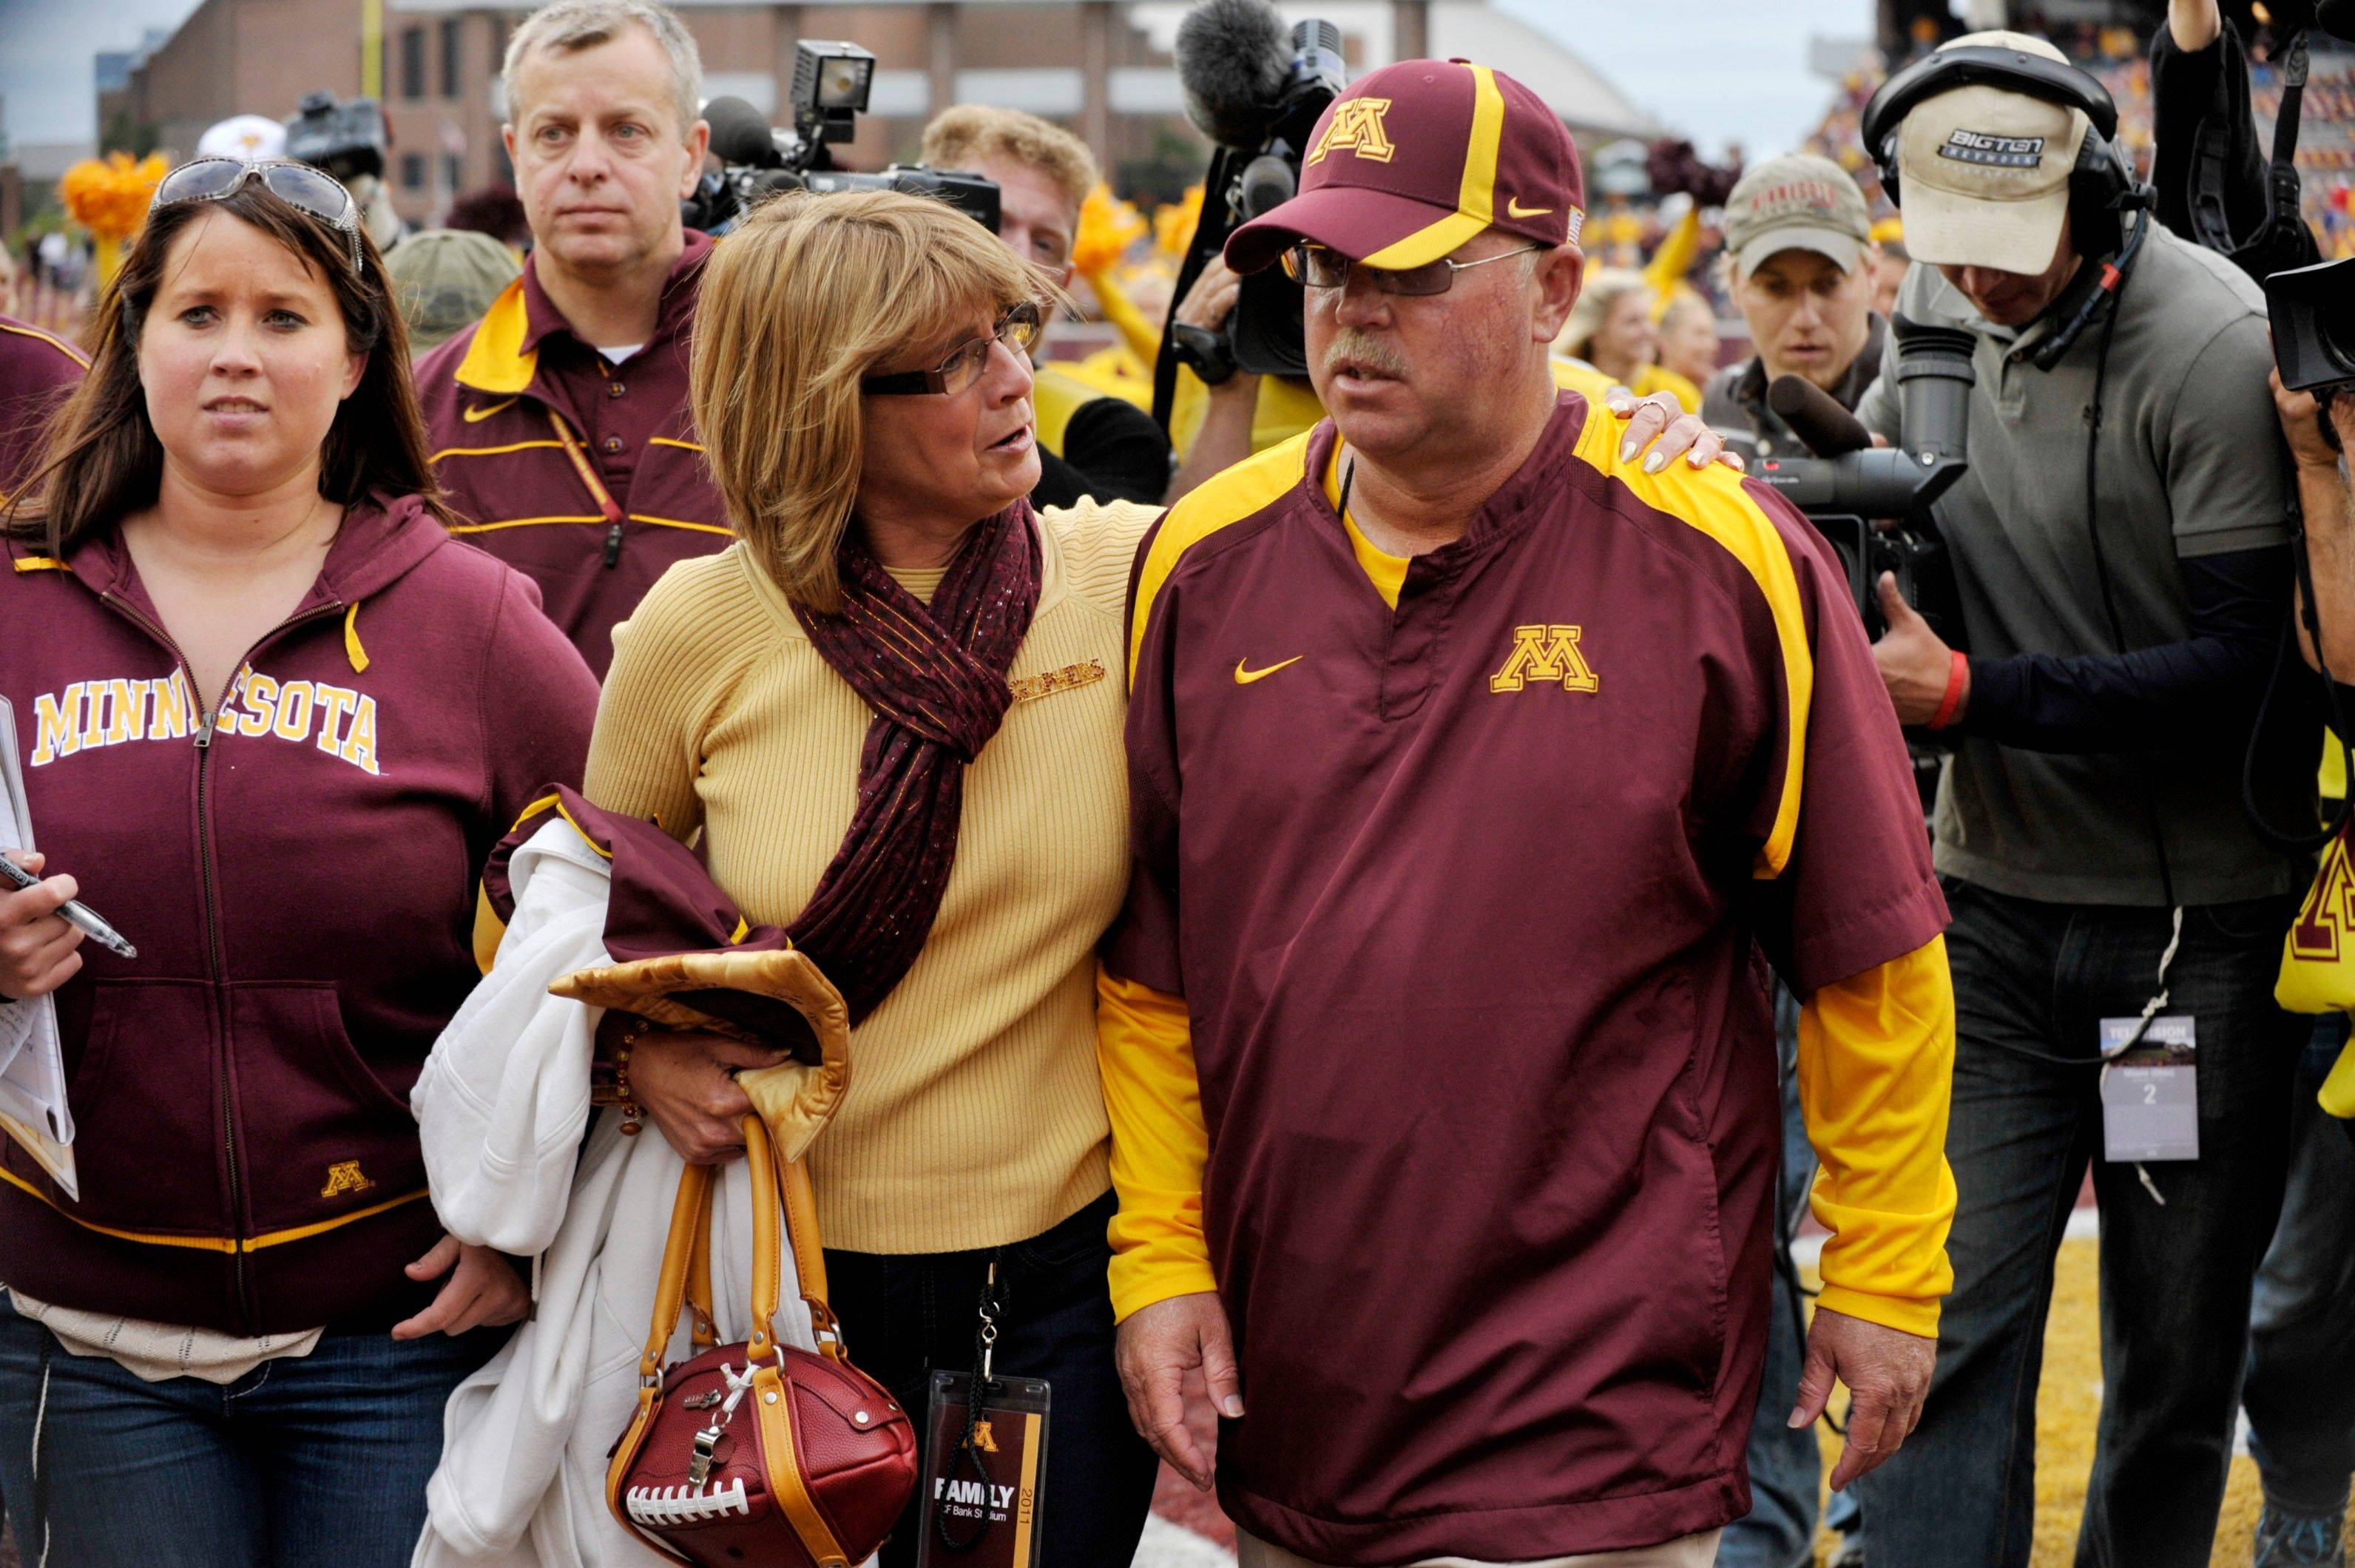 Minnesota coach Jerry Kill, front right, leaves the field with his wife, Rebecca after Minnesota defeated Miami, Ohio, 29-23 for Kill's first win at Minnesota in an NCAA football game on Saturday, Sept. 17, 2011, in Minneapolis. (AP Photo/Tom Olmscheid)